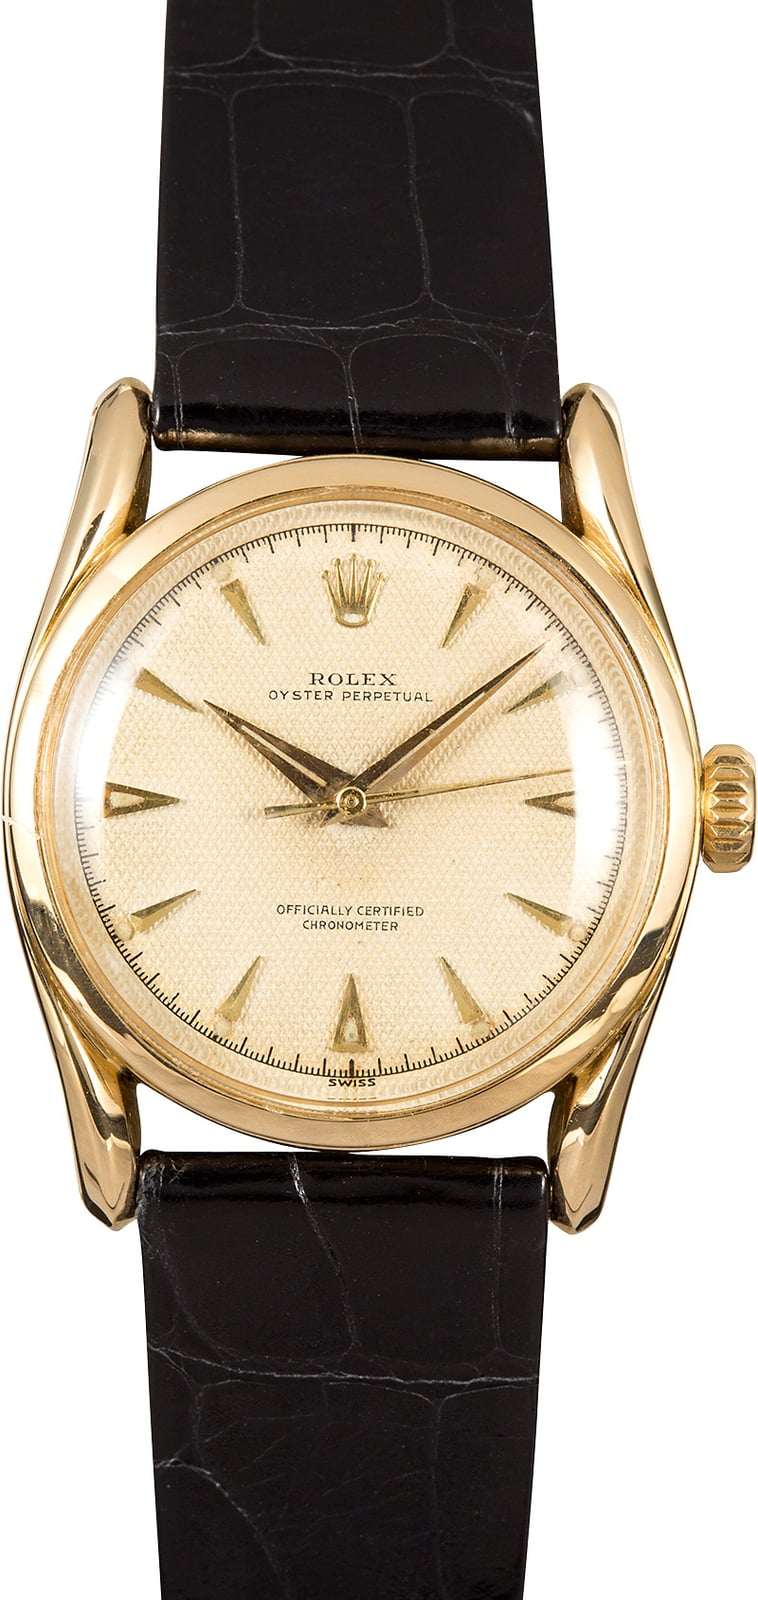 Vintage rolex oyster perpetual 6090 bombay for Vintage rolex oyster